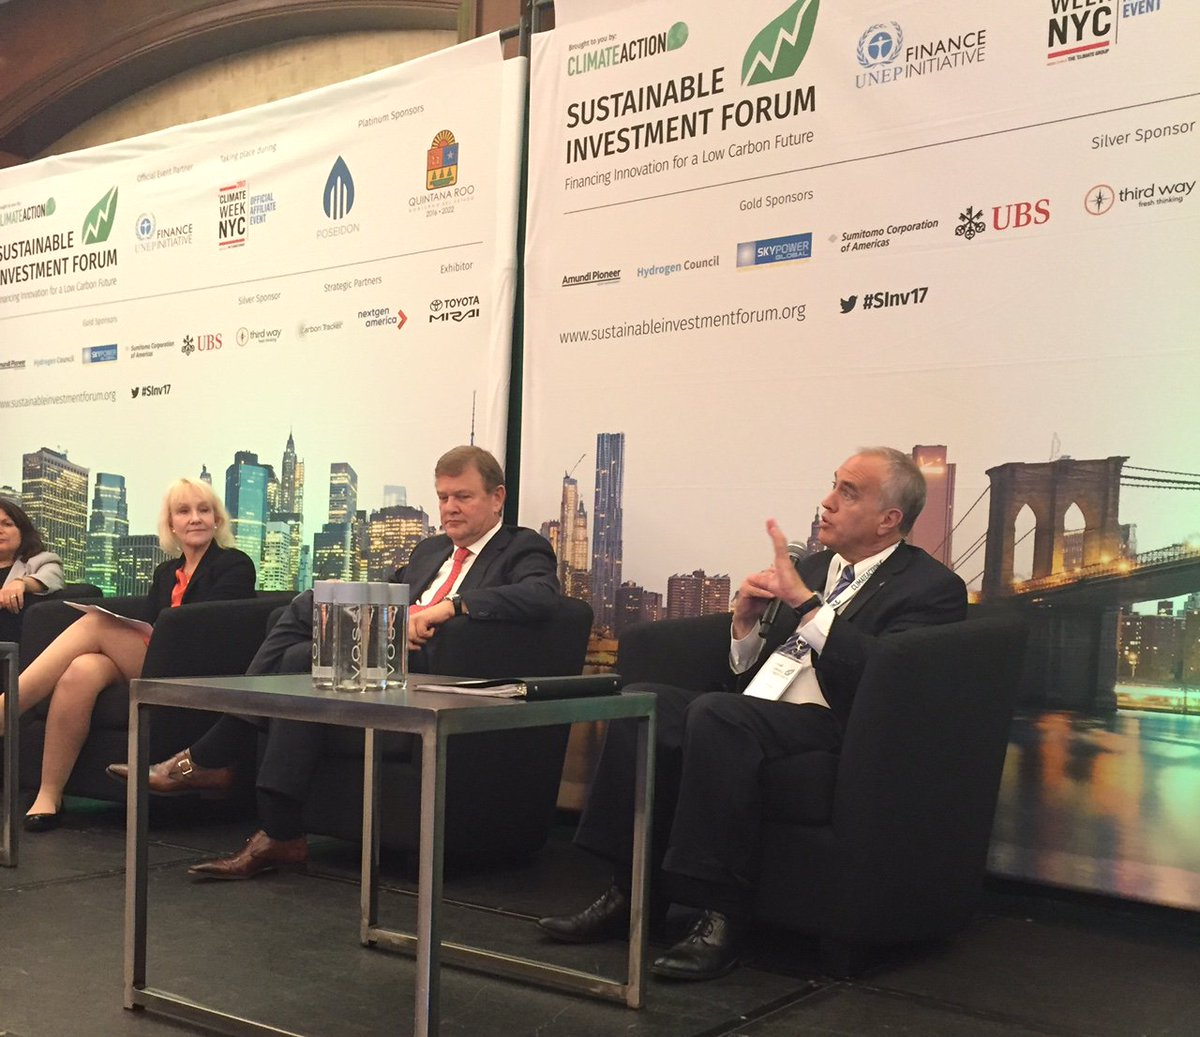 A pleasure to join #SInv17 panel. Investors can&#39;t afford to ignore Climate Risk @Climate_Action_ @ClimateWeekNYC  http:// bit.ly/2fgSHSP  &nbsp;  <br>http://pic.twitter.com/kJx8k25Q7B